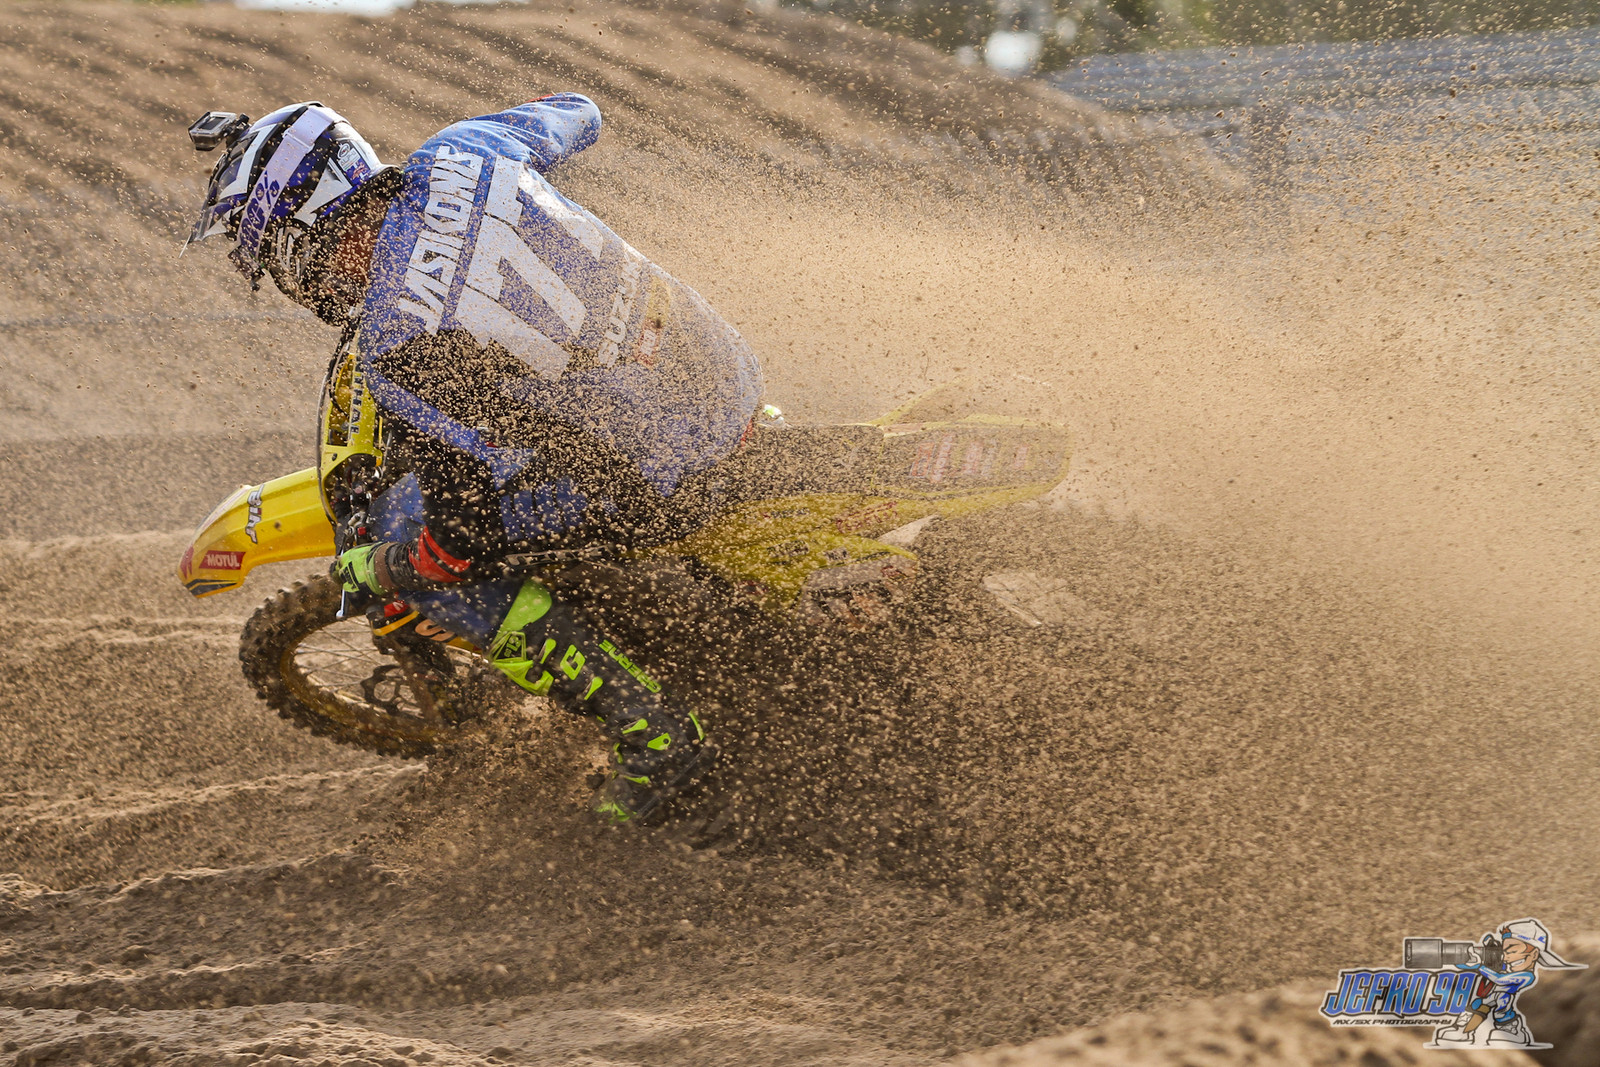 Arminas Jasikonis - Photo Gallery: MXGP of the Netherlands - Motocross Pictures - Vital MX